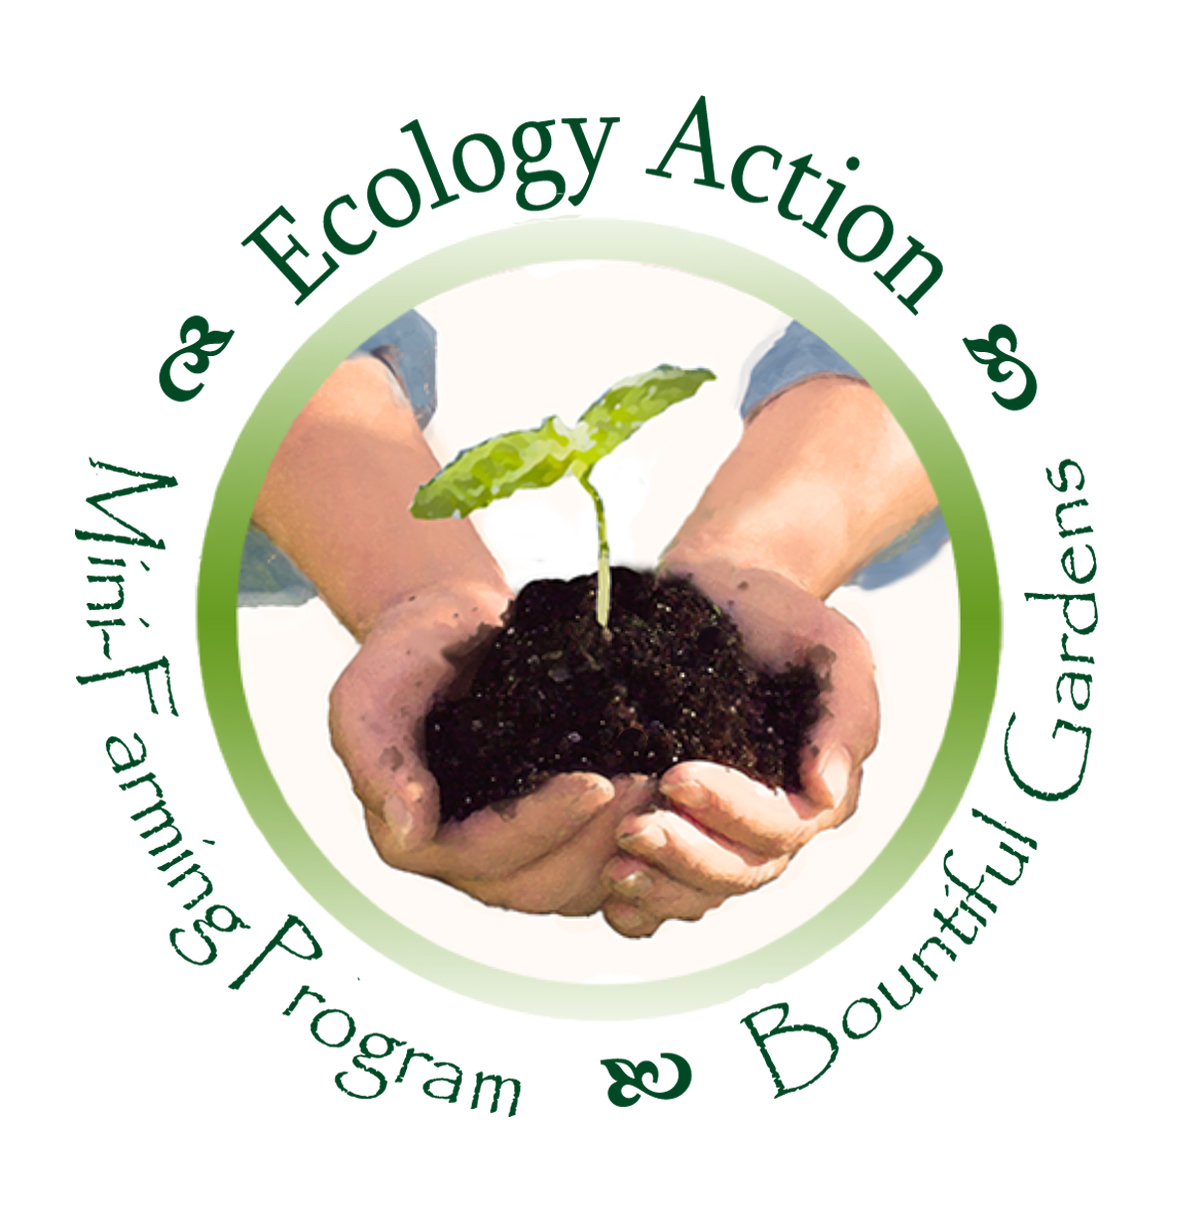 Ecology Action - Since 1972 we and our colleagues have been researching and developing GROW BIOINTENSIVE, a high-yielding, sustainable agricultural system that emphasizes local food production and is based historically on intensive gardening systems.